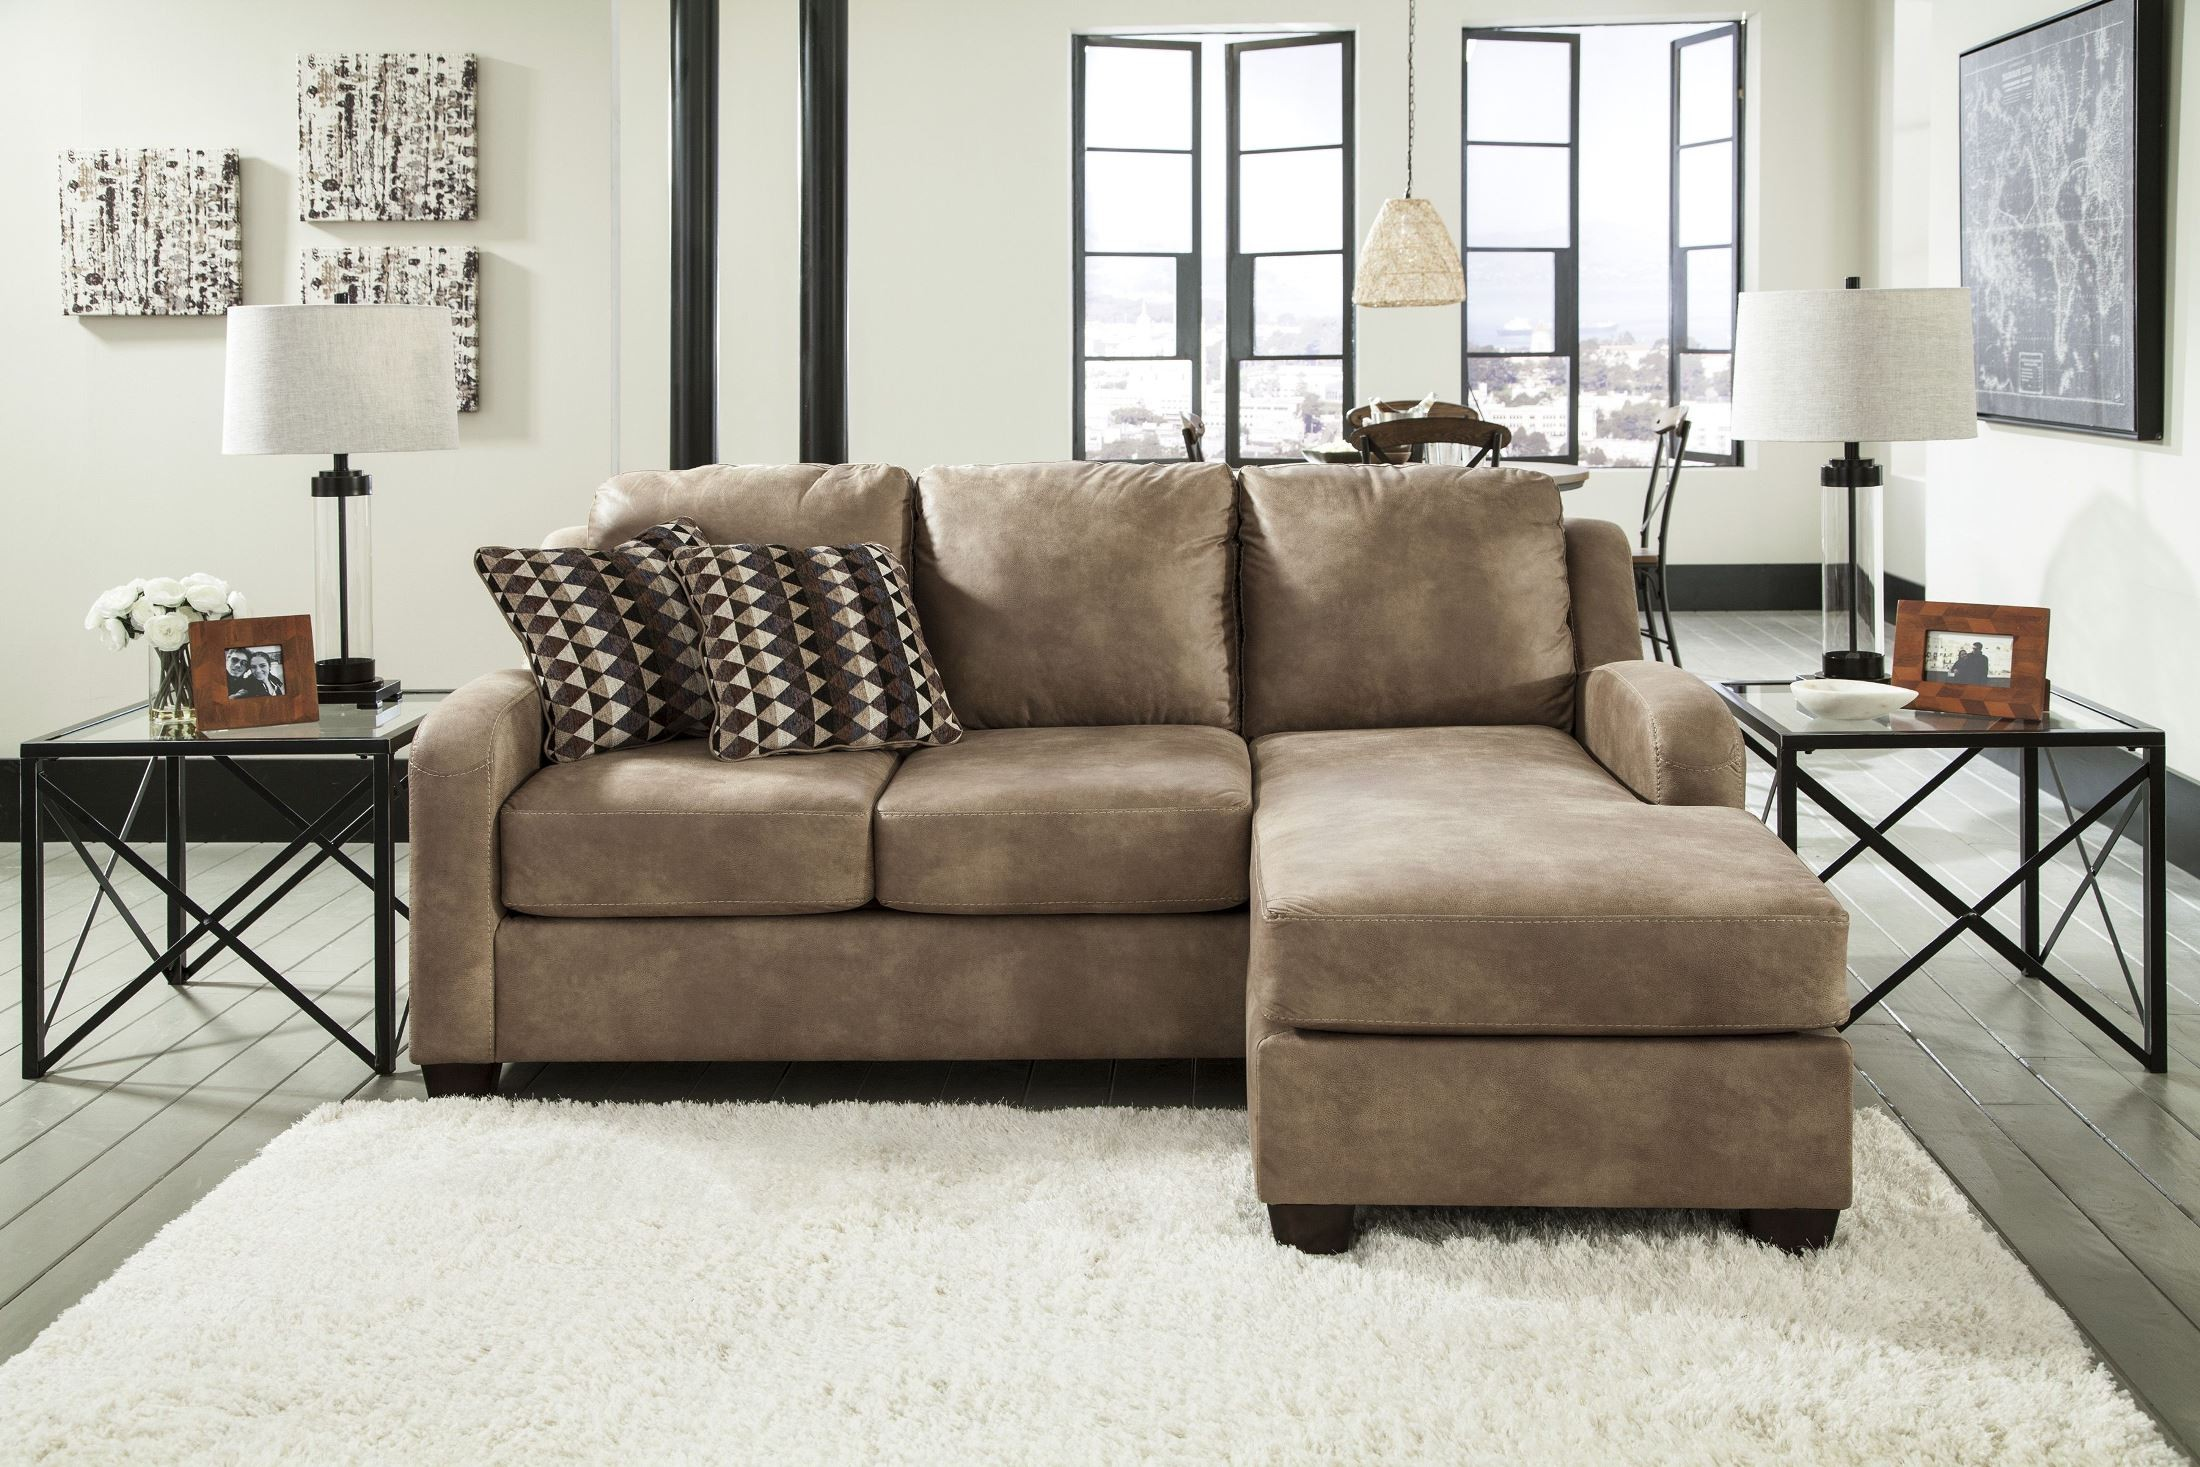 Alturo dune sofa chaise from ashley 6000318 coleman for Ashley furniture sectional sofas chaise